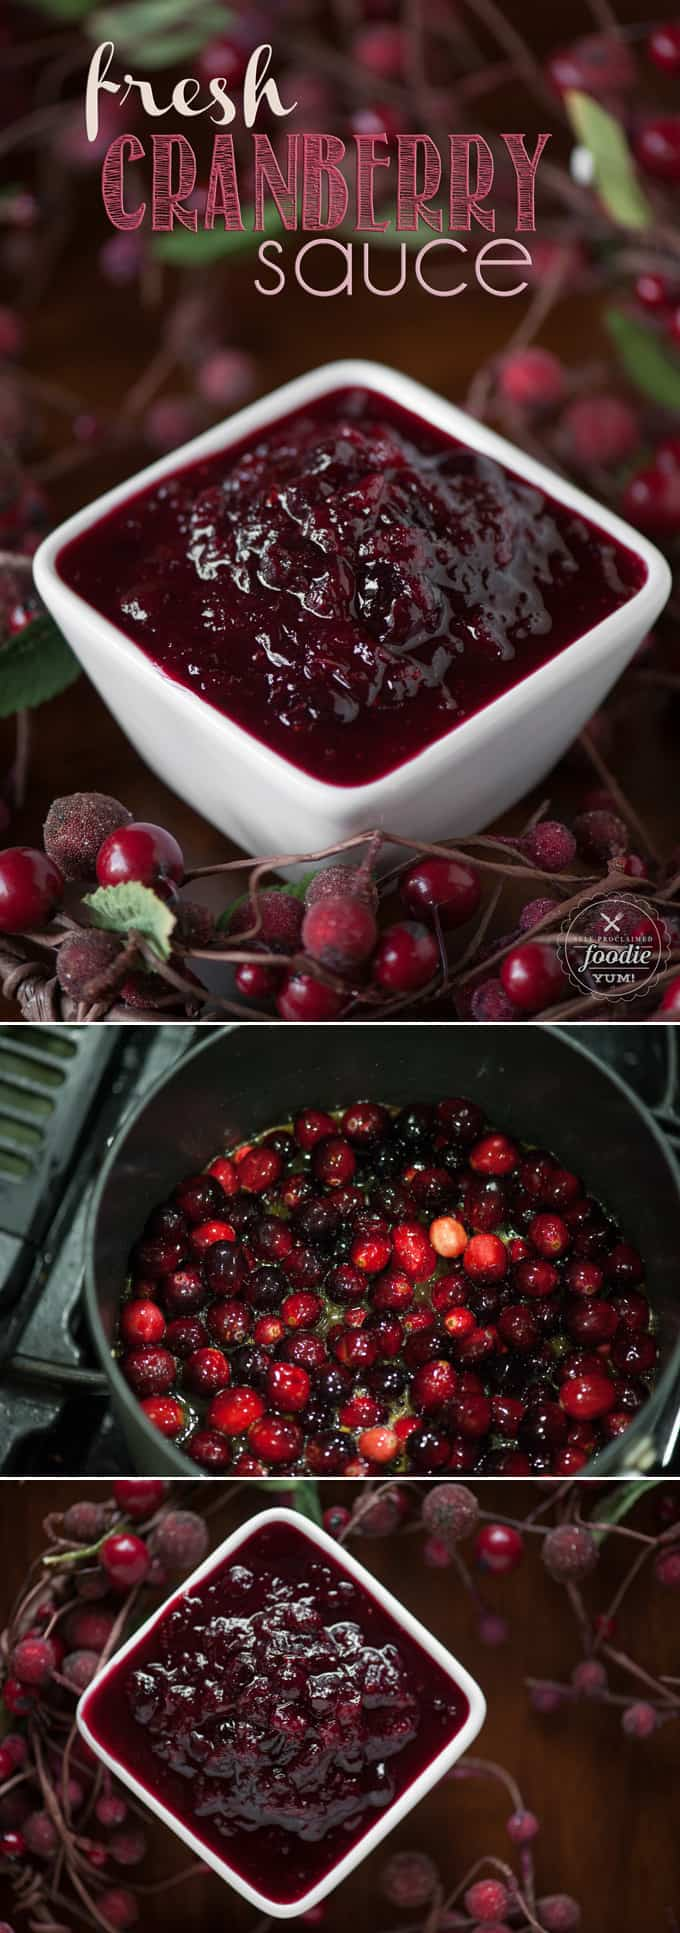 Homemade Cranberry Sauce made with fresh cranberries, orange juice and Grand Marnier is a sweet and incredibly flavorful Thanksgiving side dish. #cranberrysauce #homemadecranberrysauce #thanksgiving